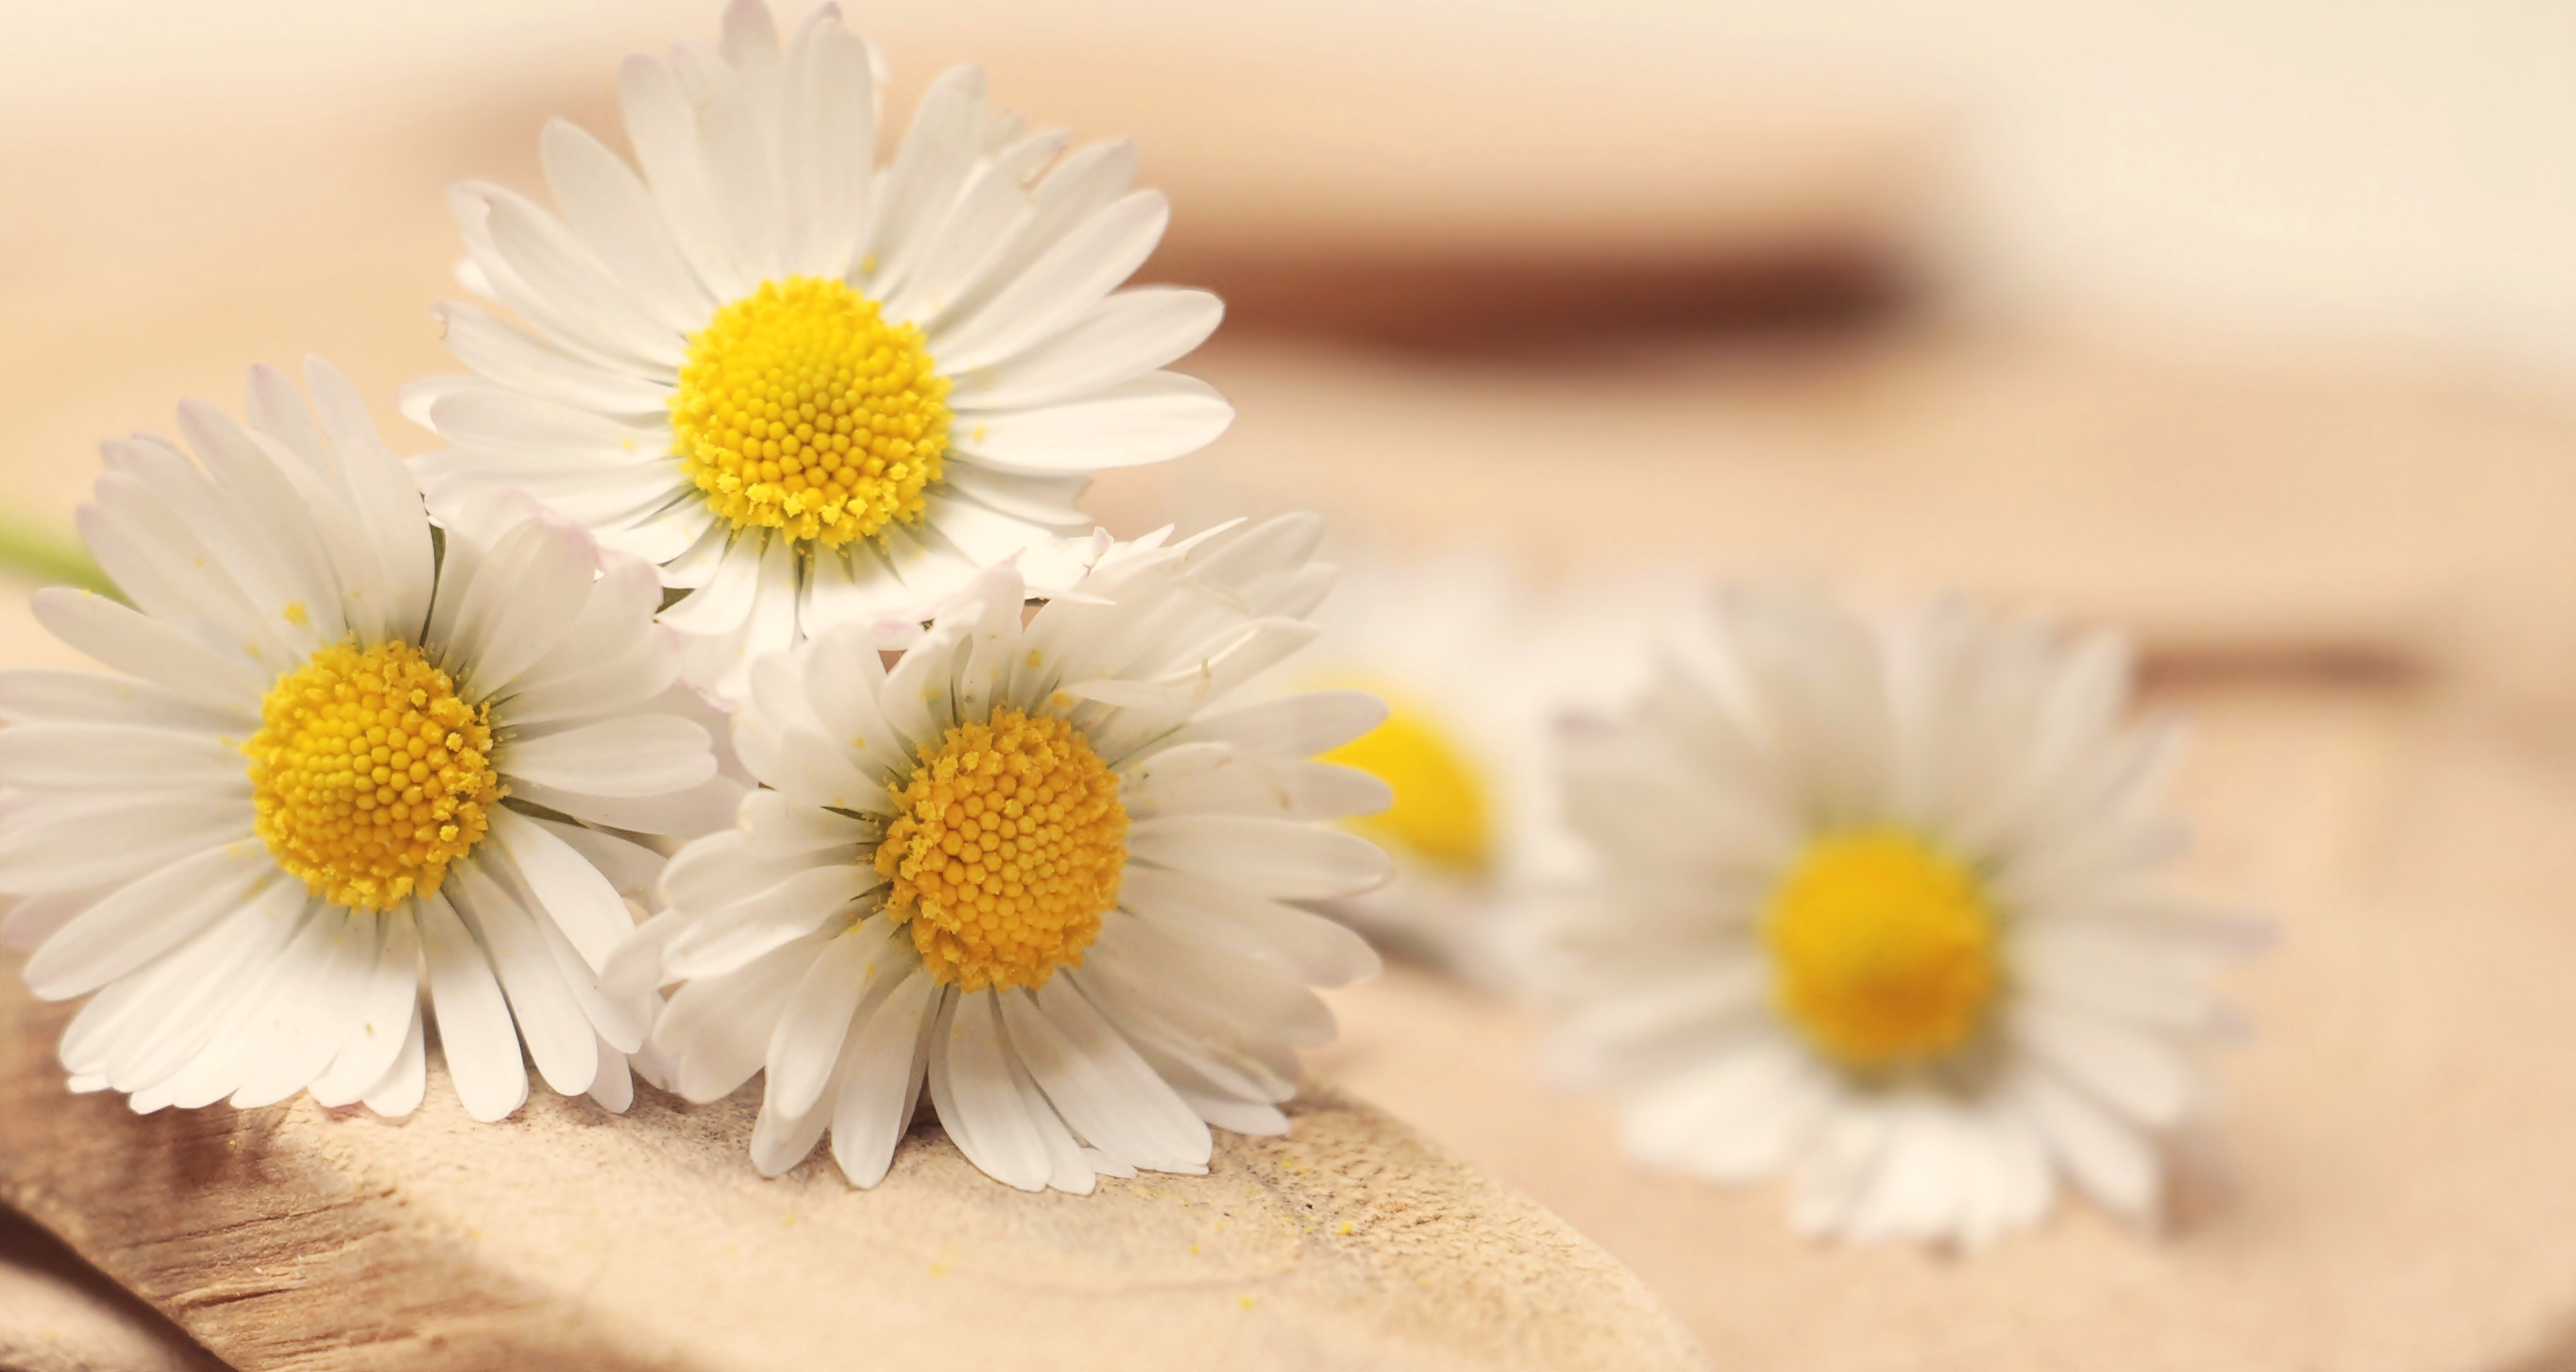 Yellow Daisy Flowers On Surface Free Stock Photo